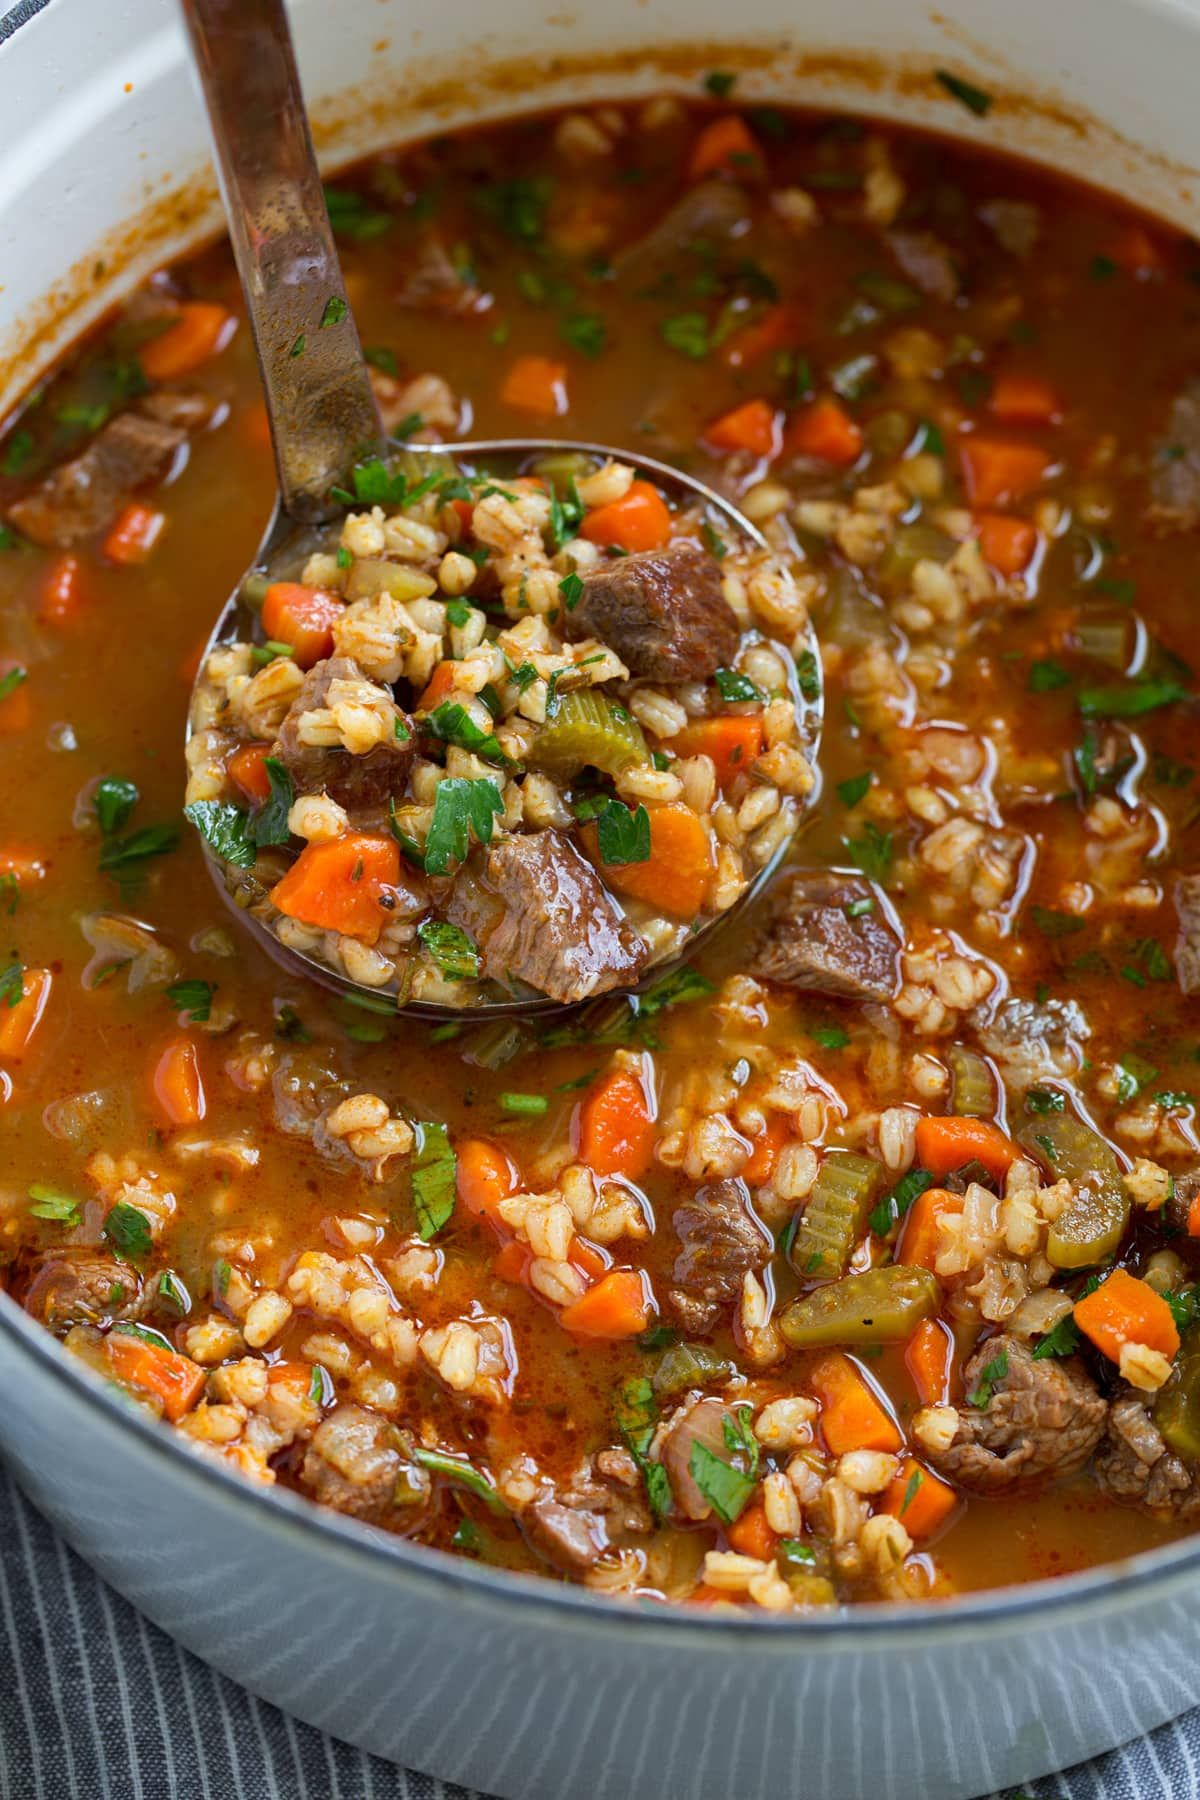 Beef Barley Soup Rich And Hearty And Perfectly Cozy Made With Tender Chunks Of Beef Roas Beef Barley Soup Stovetop Beef Barley Soup Beef Barley Soup Recipes